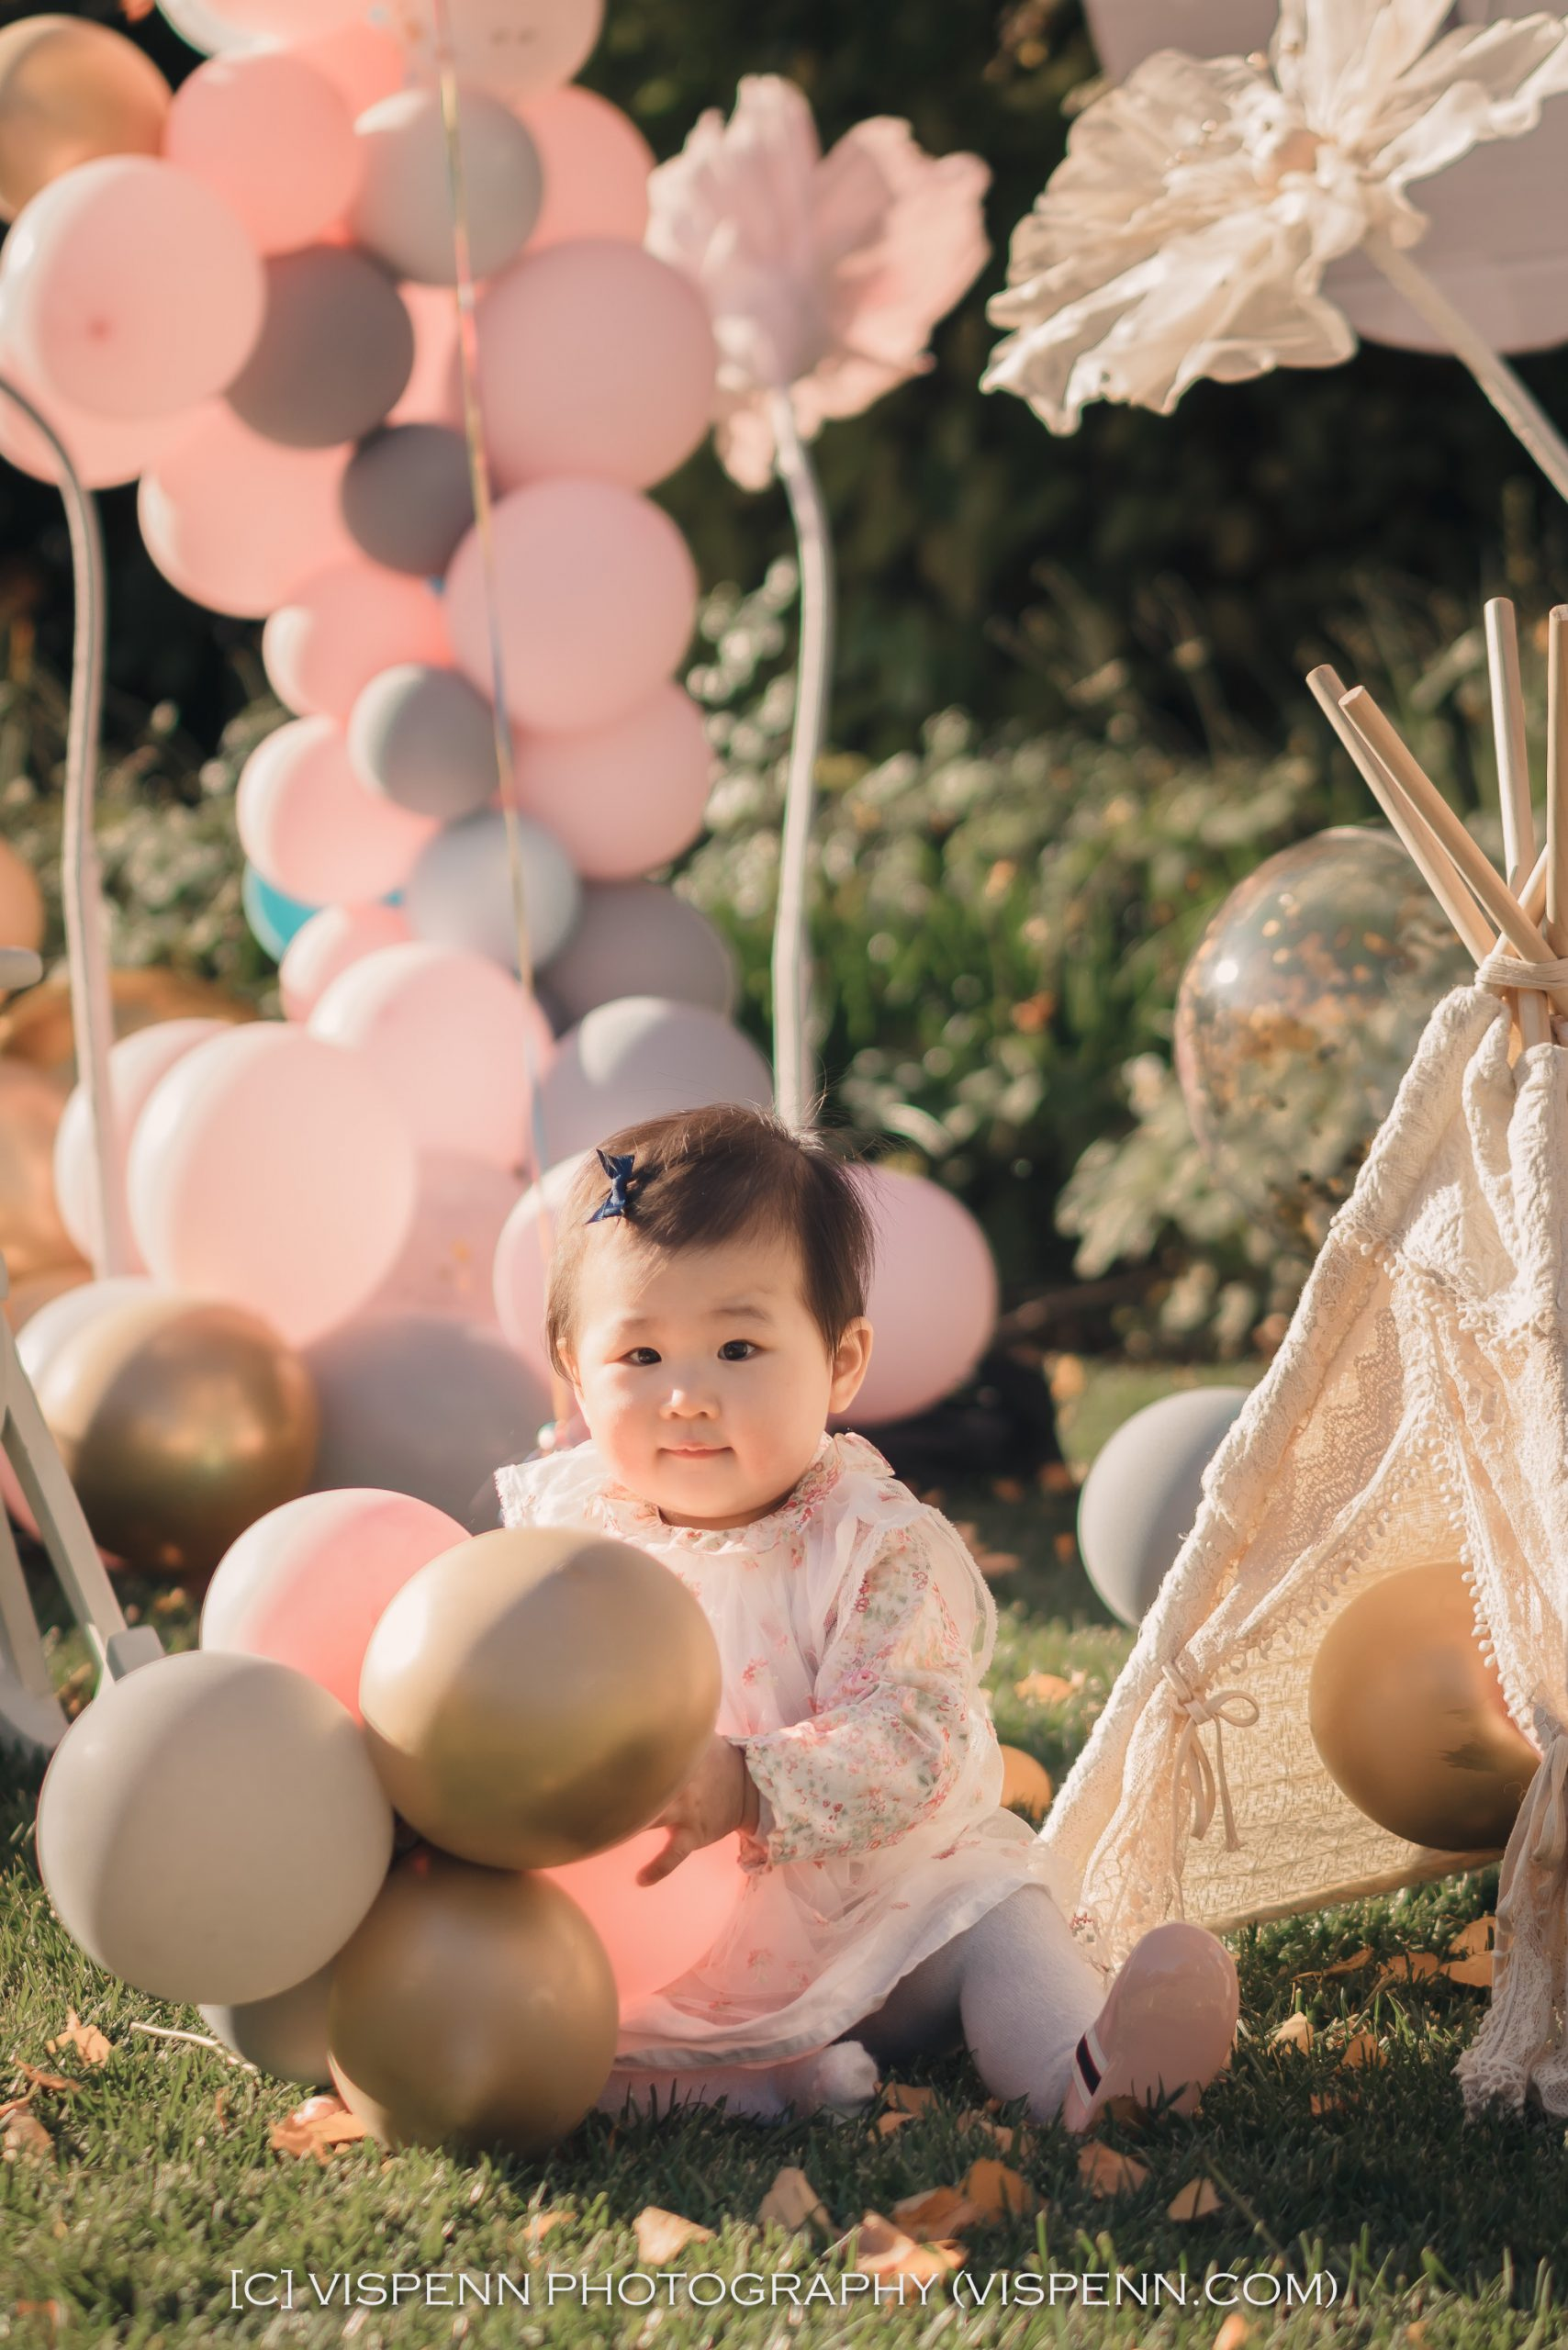 Melbourne Baby Family Birthday Party Photographer 墨尔本 百日宴 满月宴 周岁宴 摄影 VISPENN Jenny 1024 Sony VISPENN